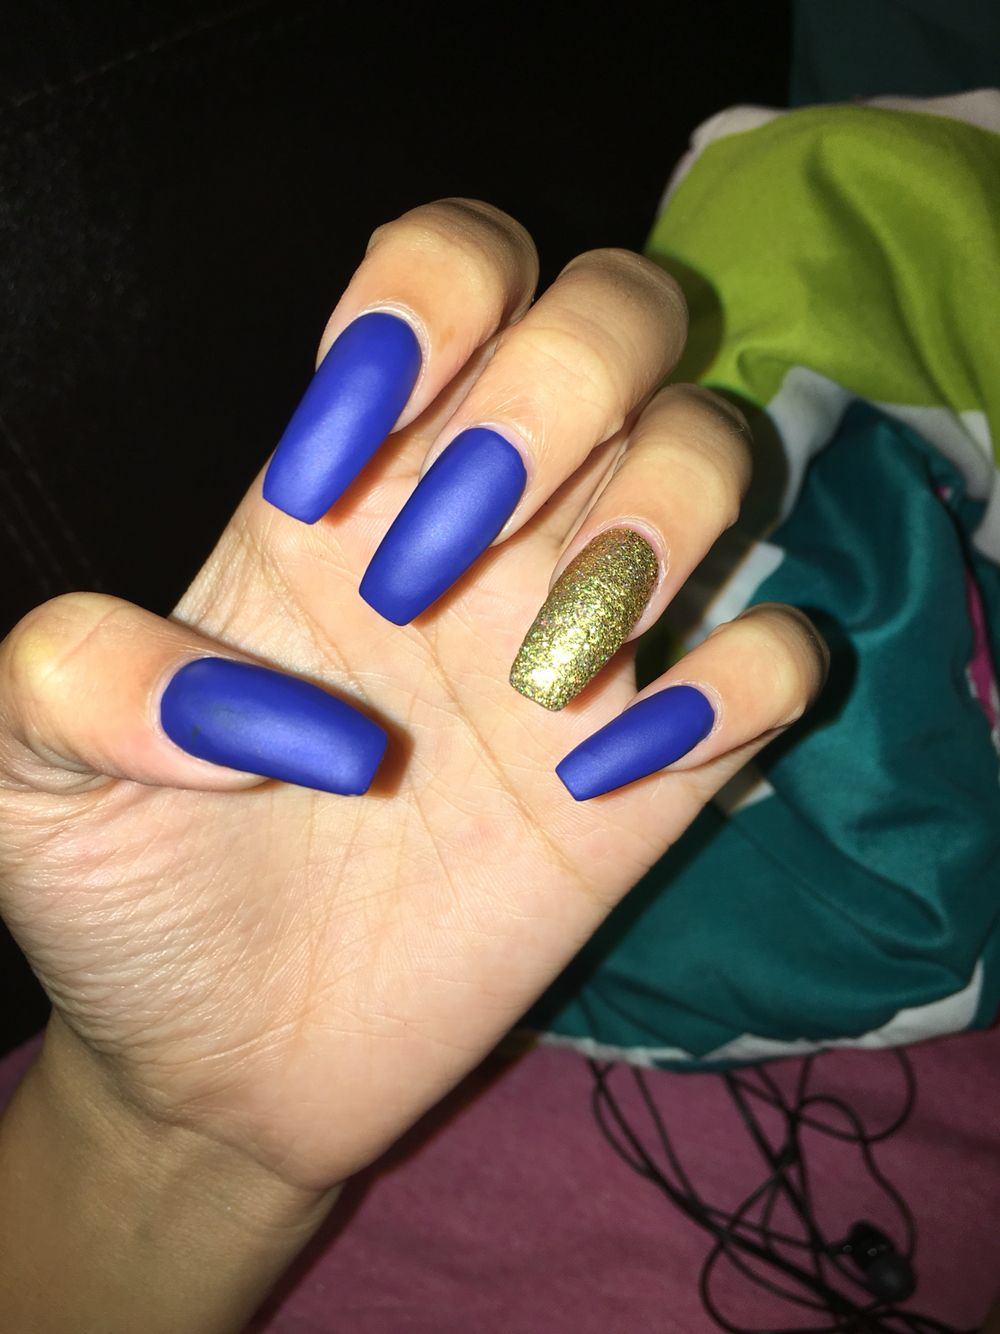 Light Blue Acrylic Nails With Initial